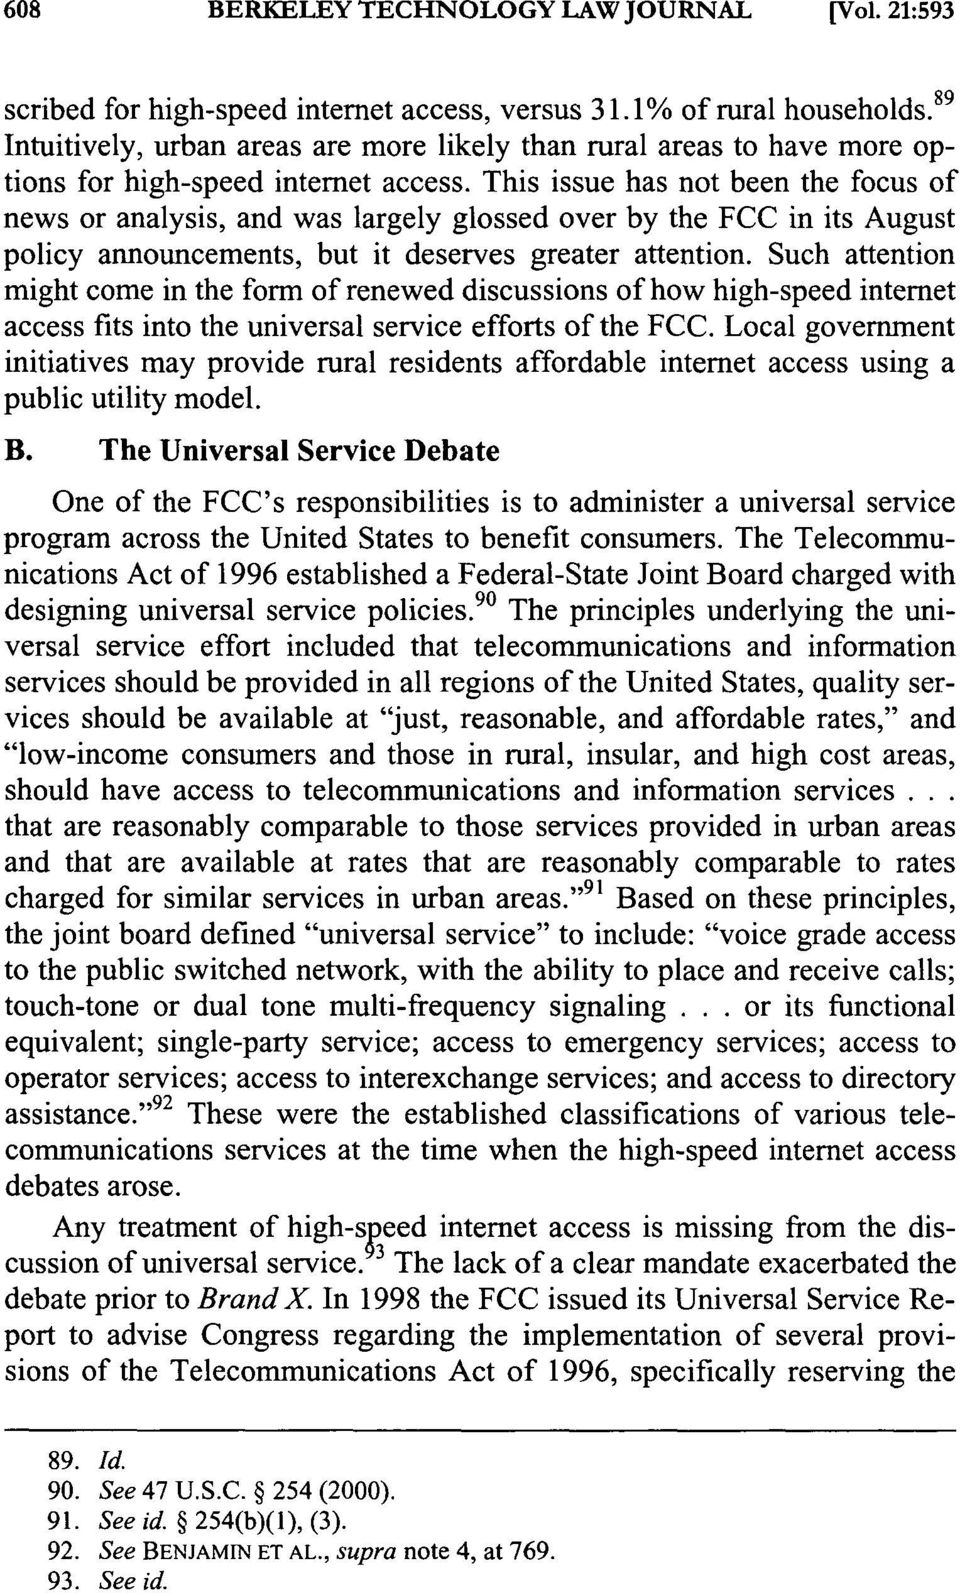 This issue has not been the focus of news or analysis, and was largely glossed over by the FCC in its August policy announcements, but it deserves greater attention.